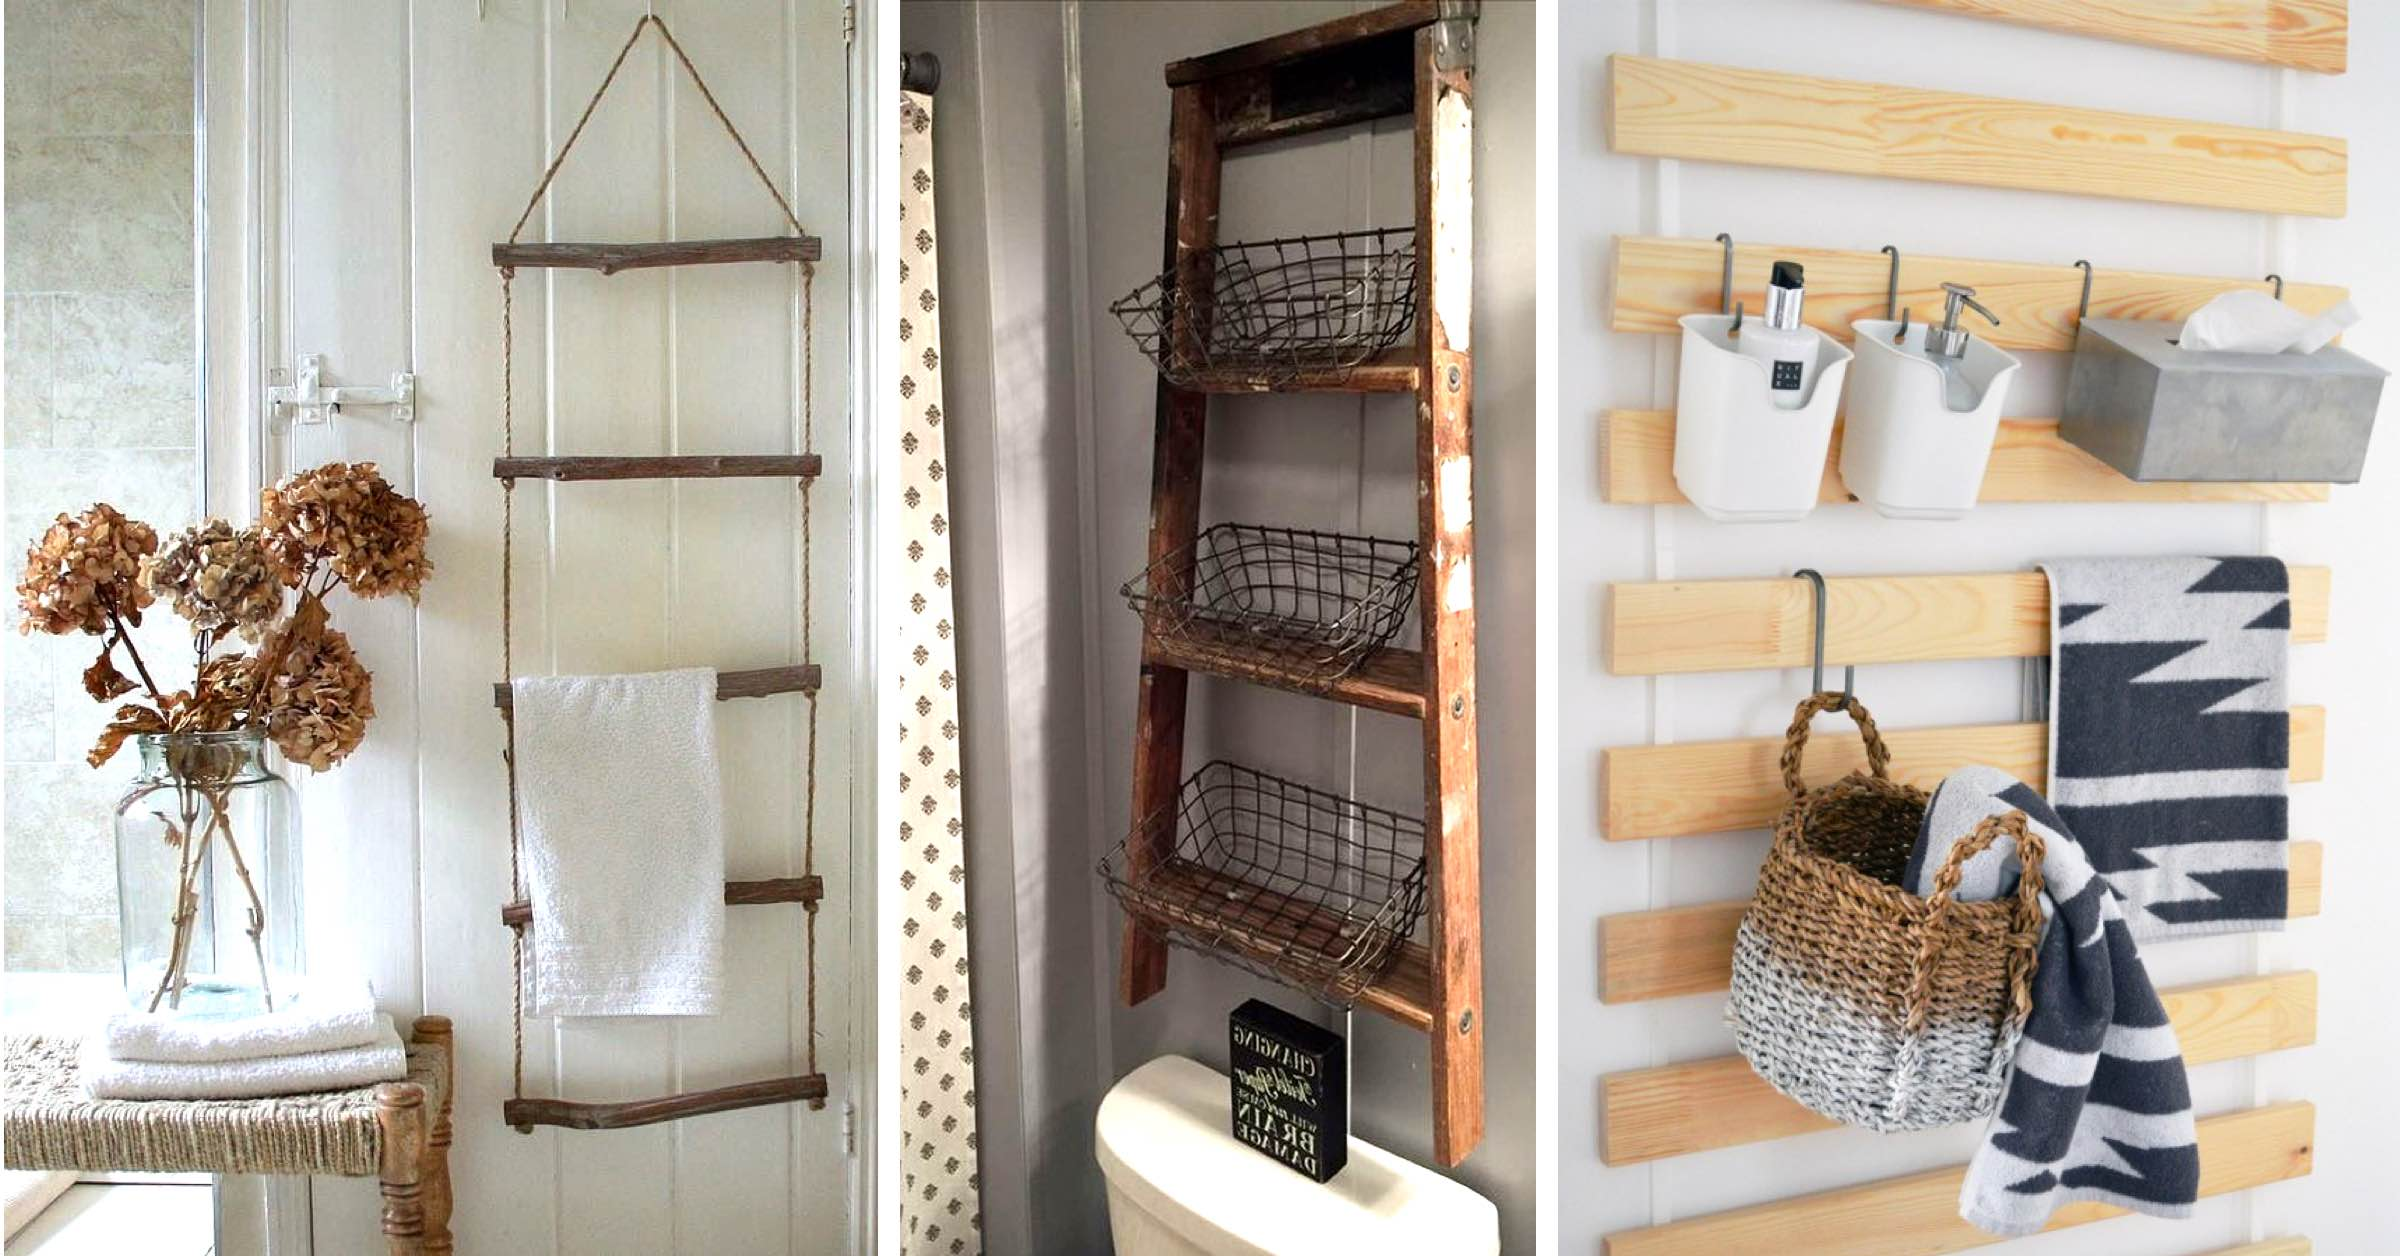 Tiny Home Designs: 20 Hanging Bathroom Storage Ideas Making The Most Of The